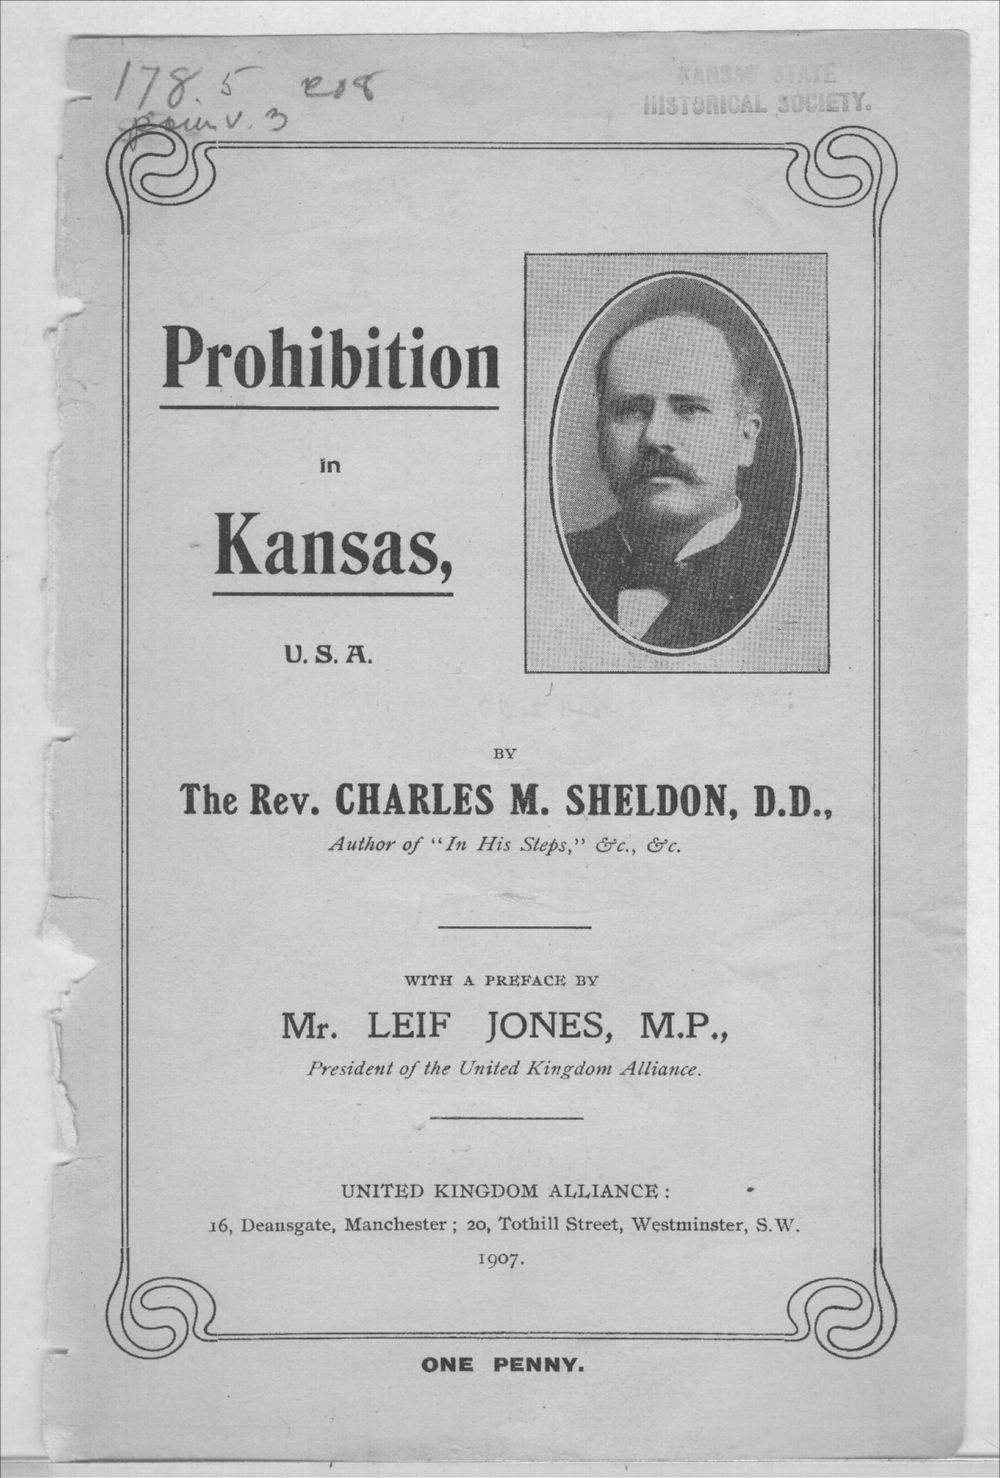 Prohibition in Kansas, U.S.A. - Front Cover